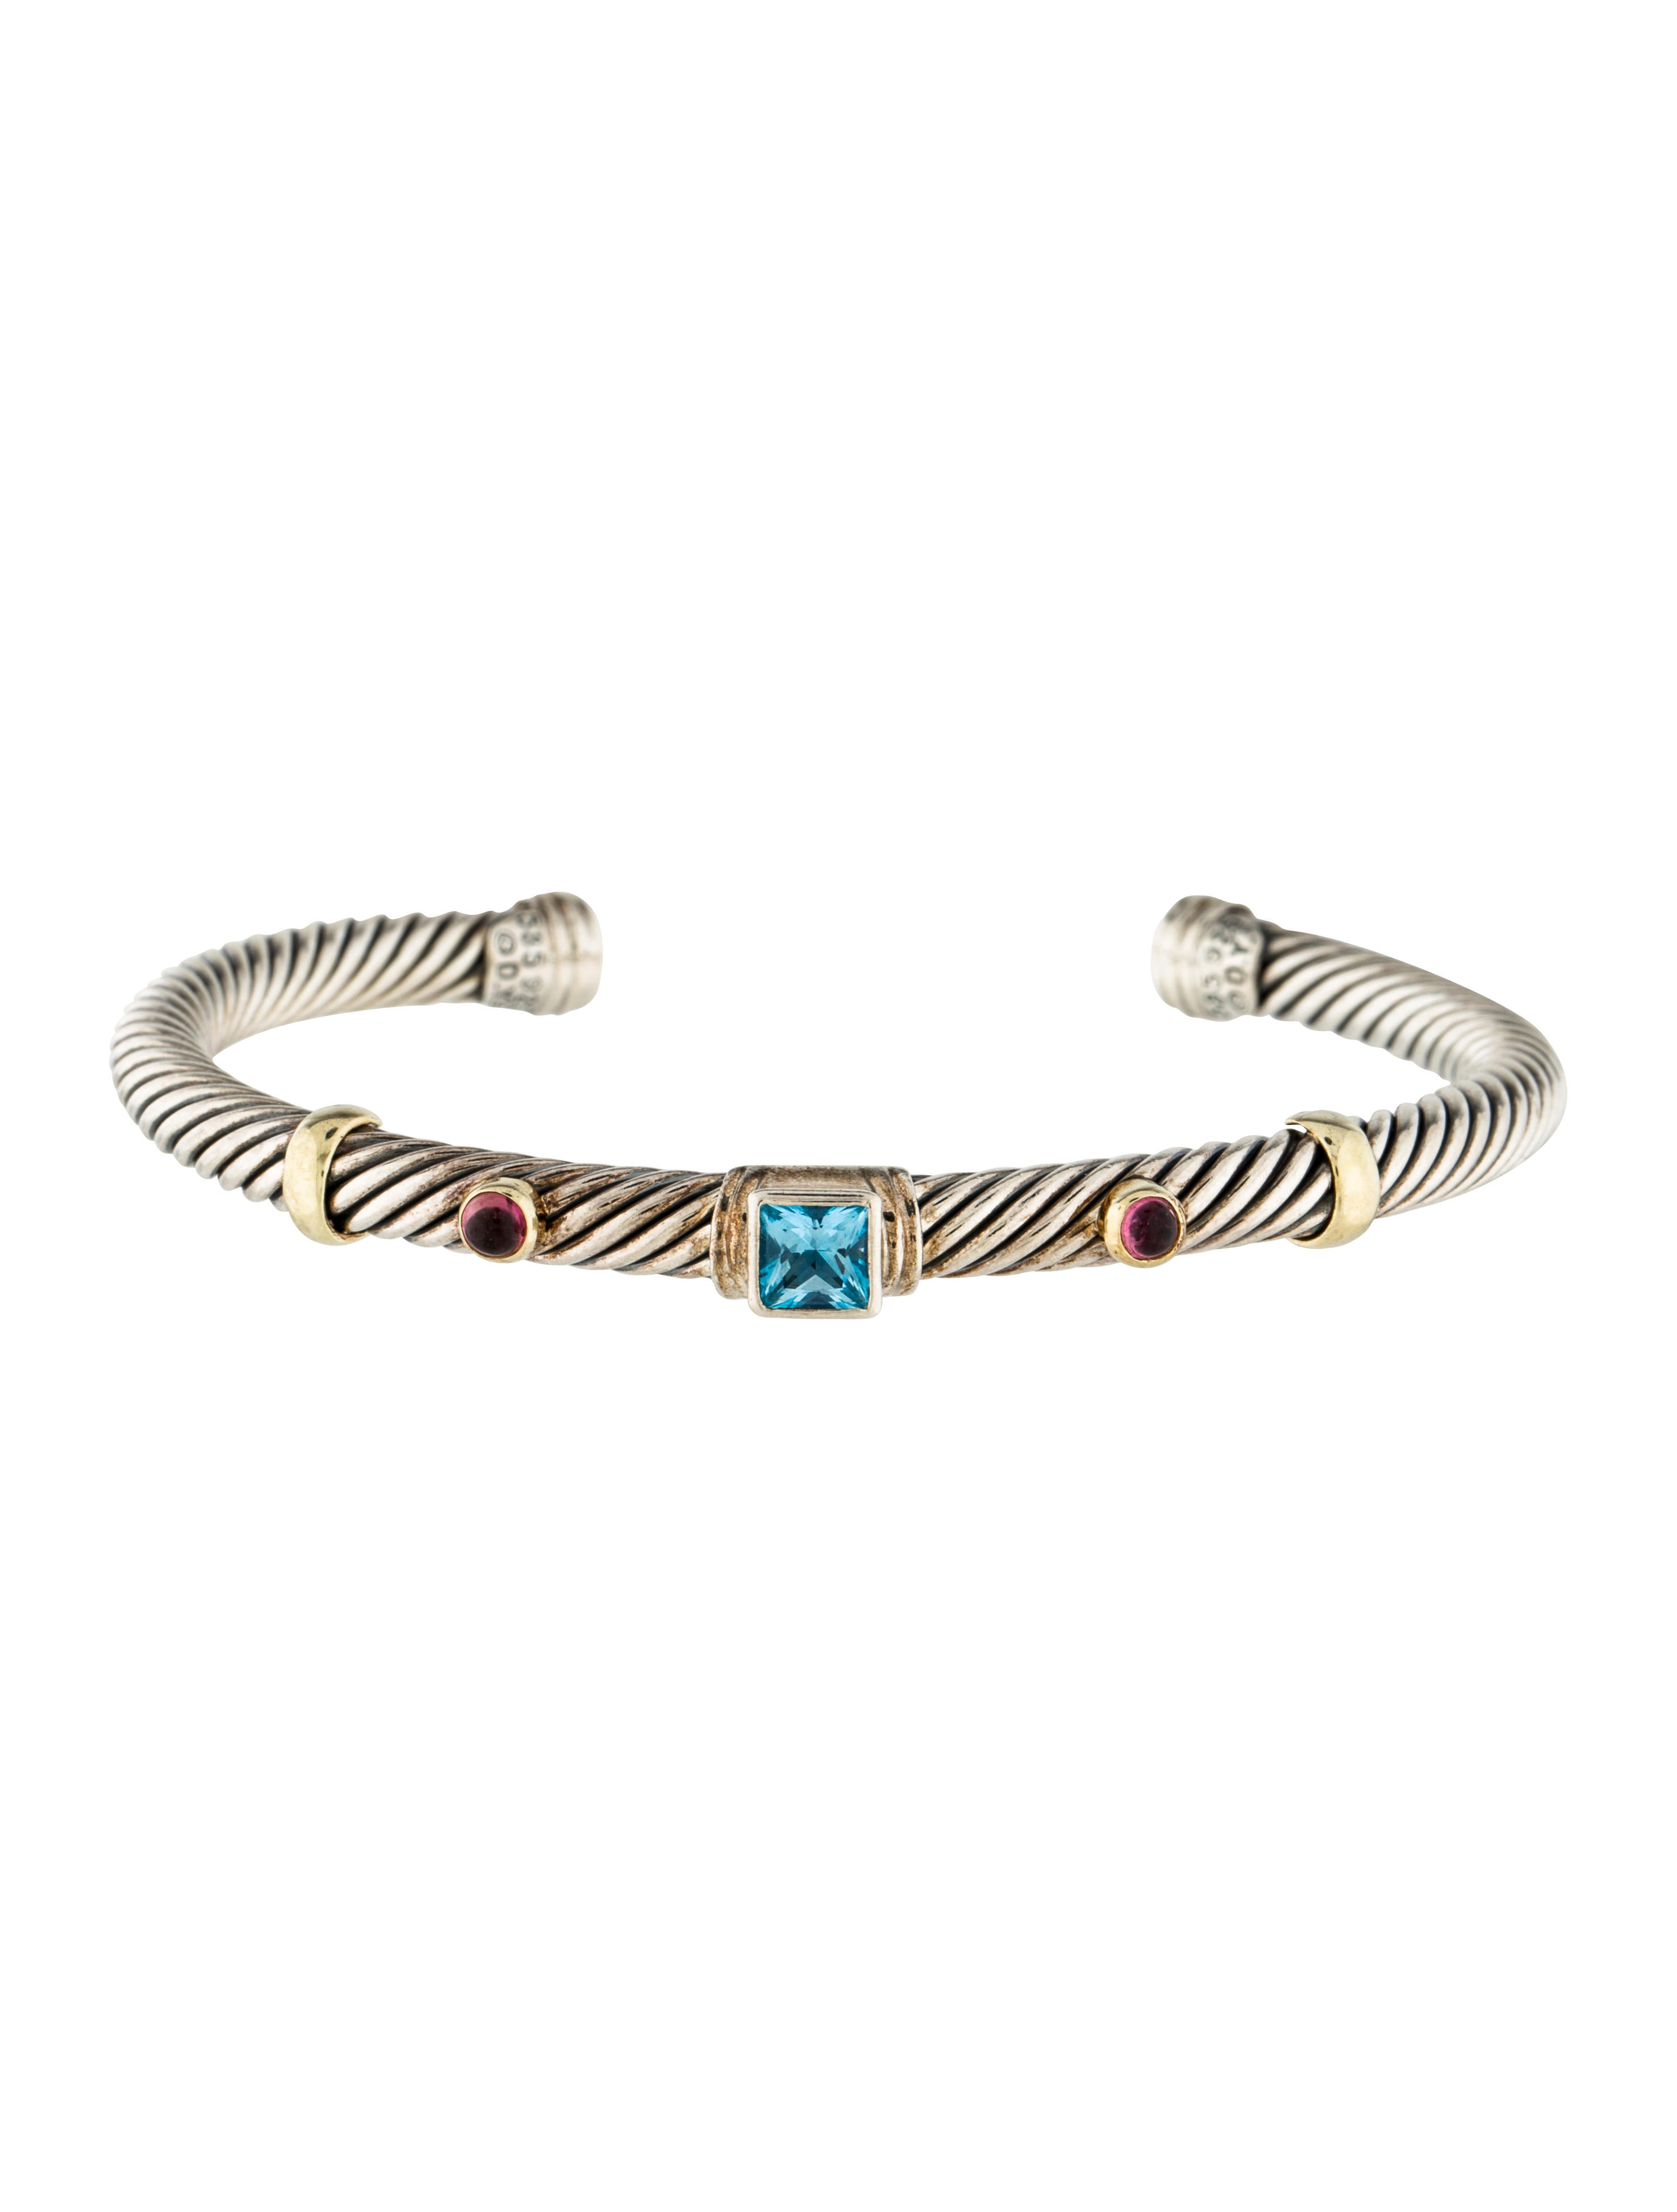 David yurman cable bracelet bracelets dvy42254 the for David yurman inspired bracelet cable